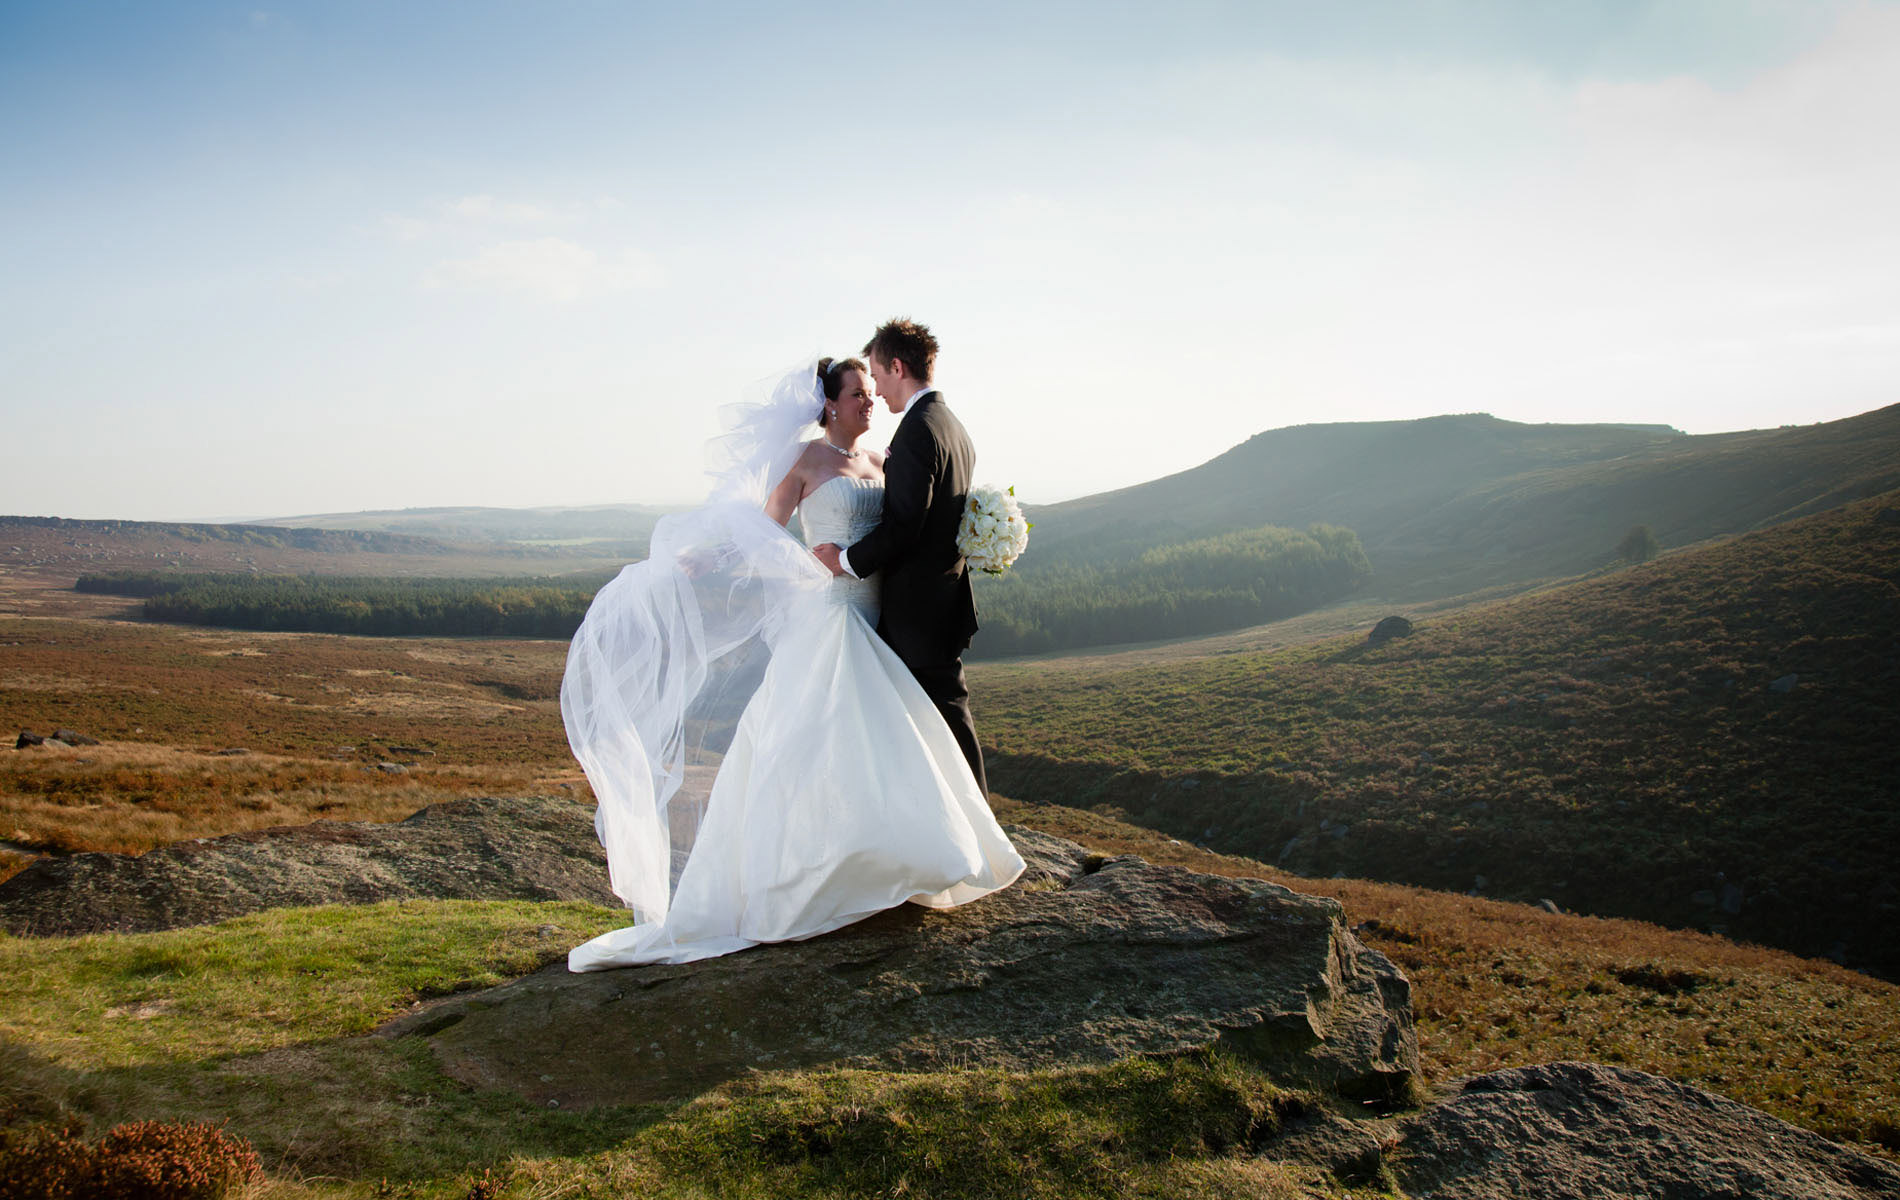 weddings wedding photography stockport sheffield peak district models manchester losehill house derbyshire